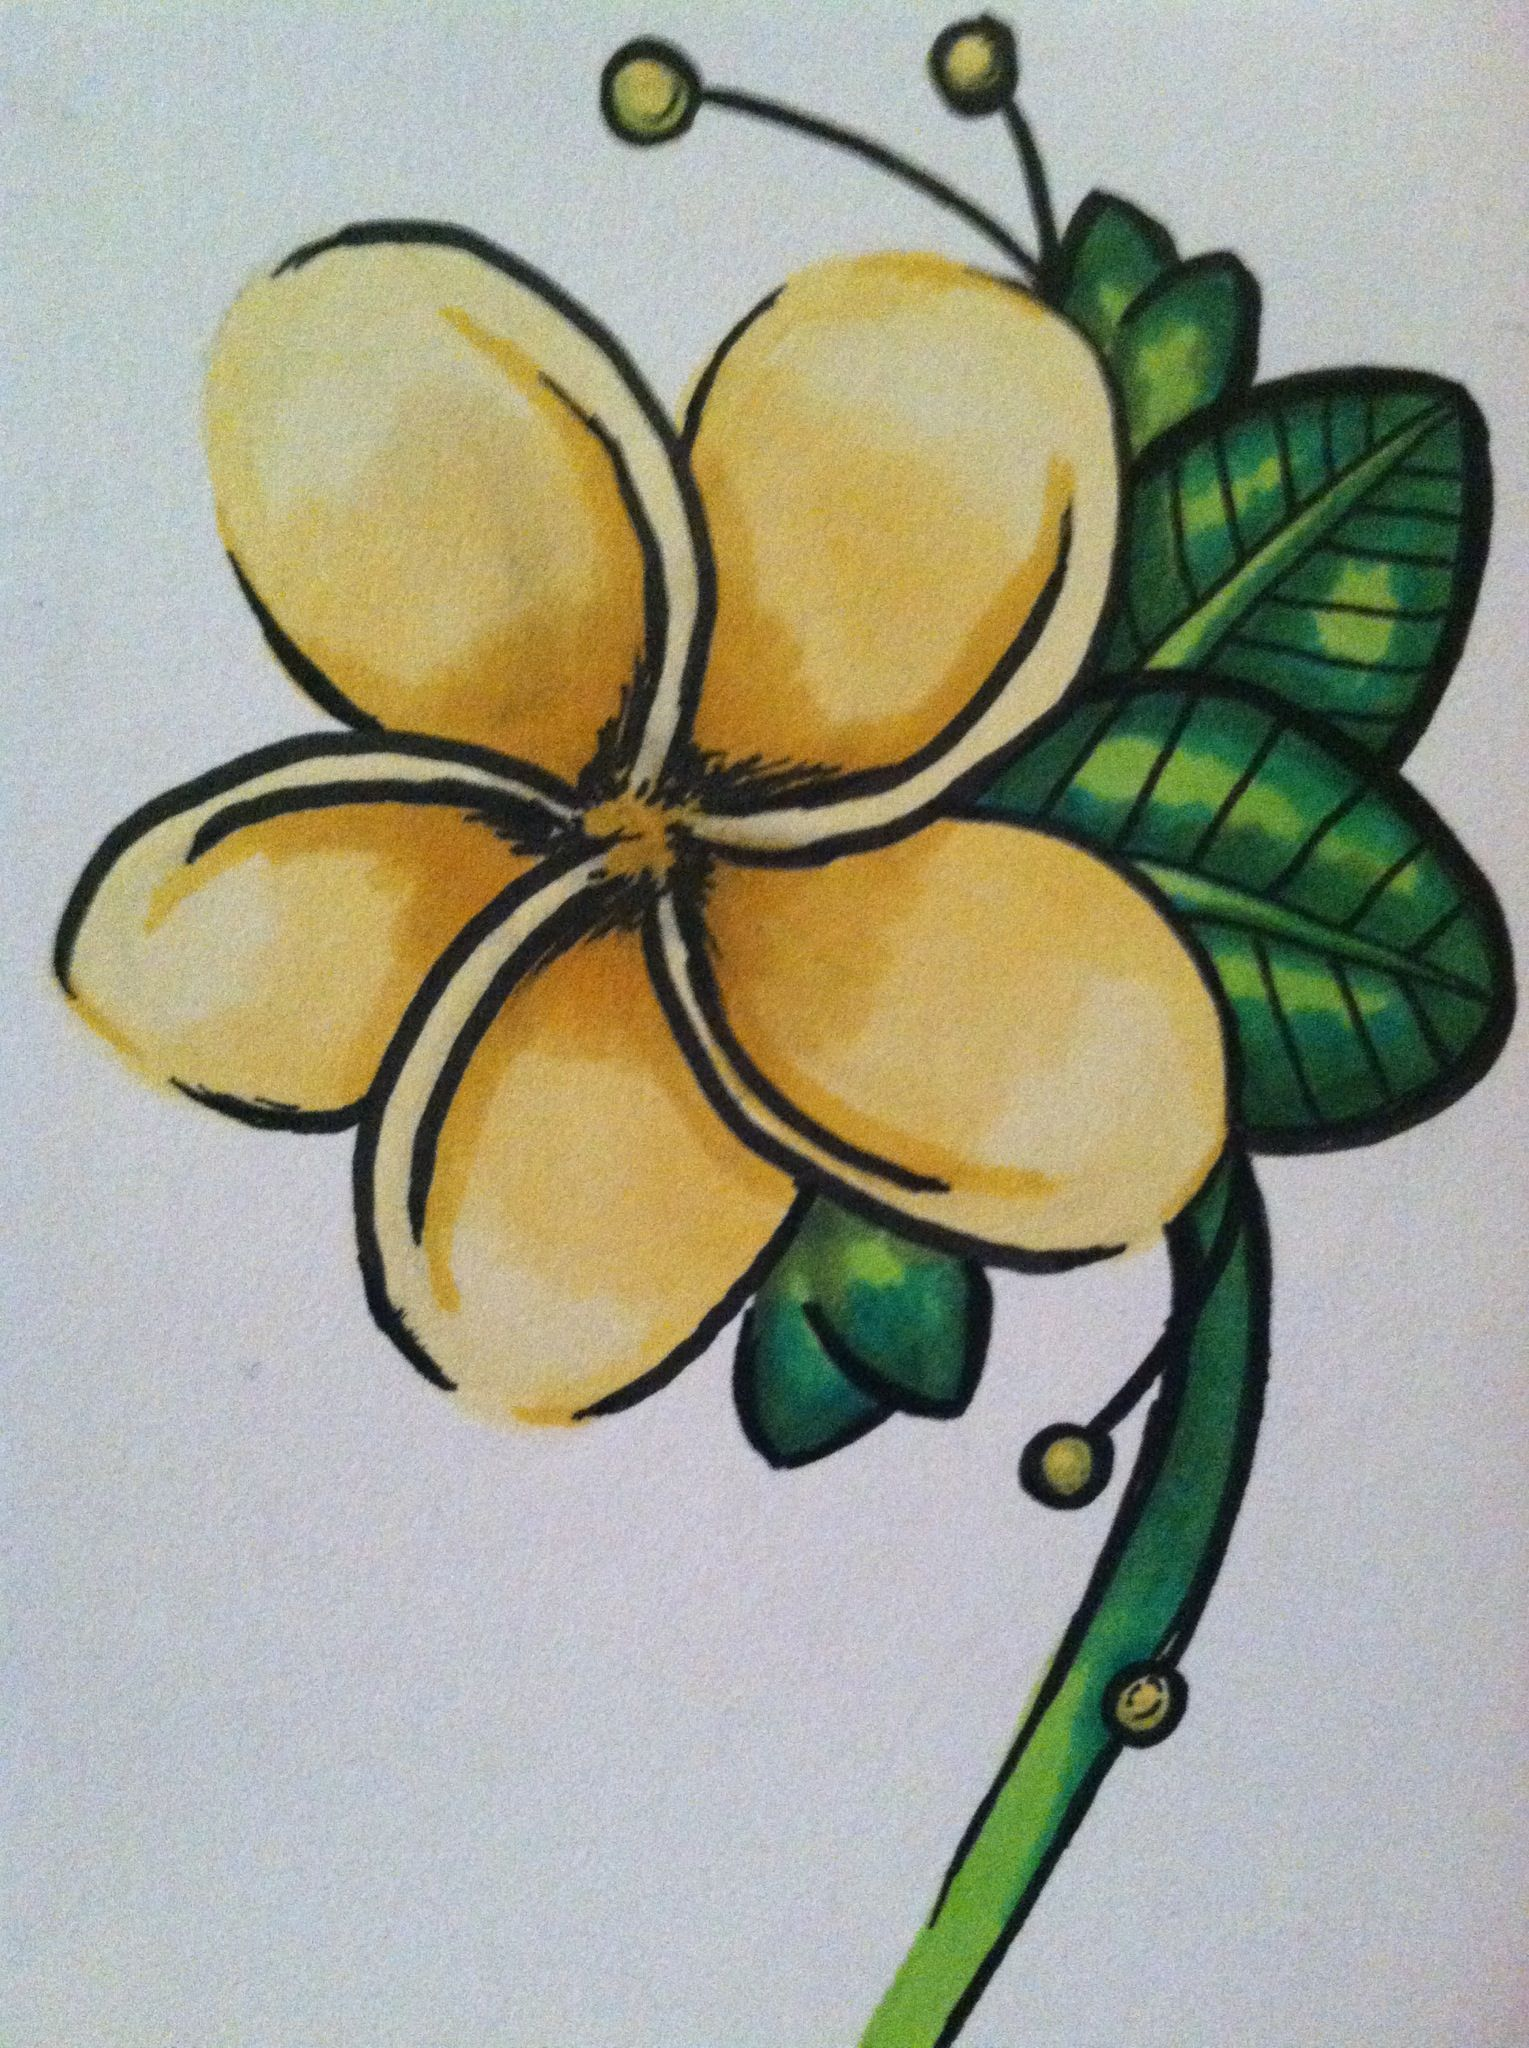 How to Color a Simple Leaves With Prismacolor Markers